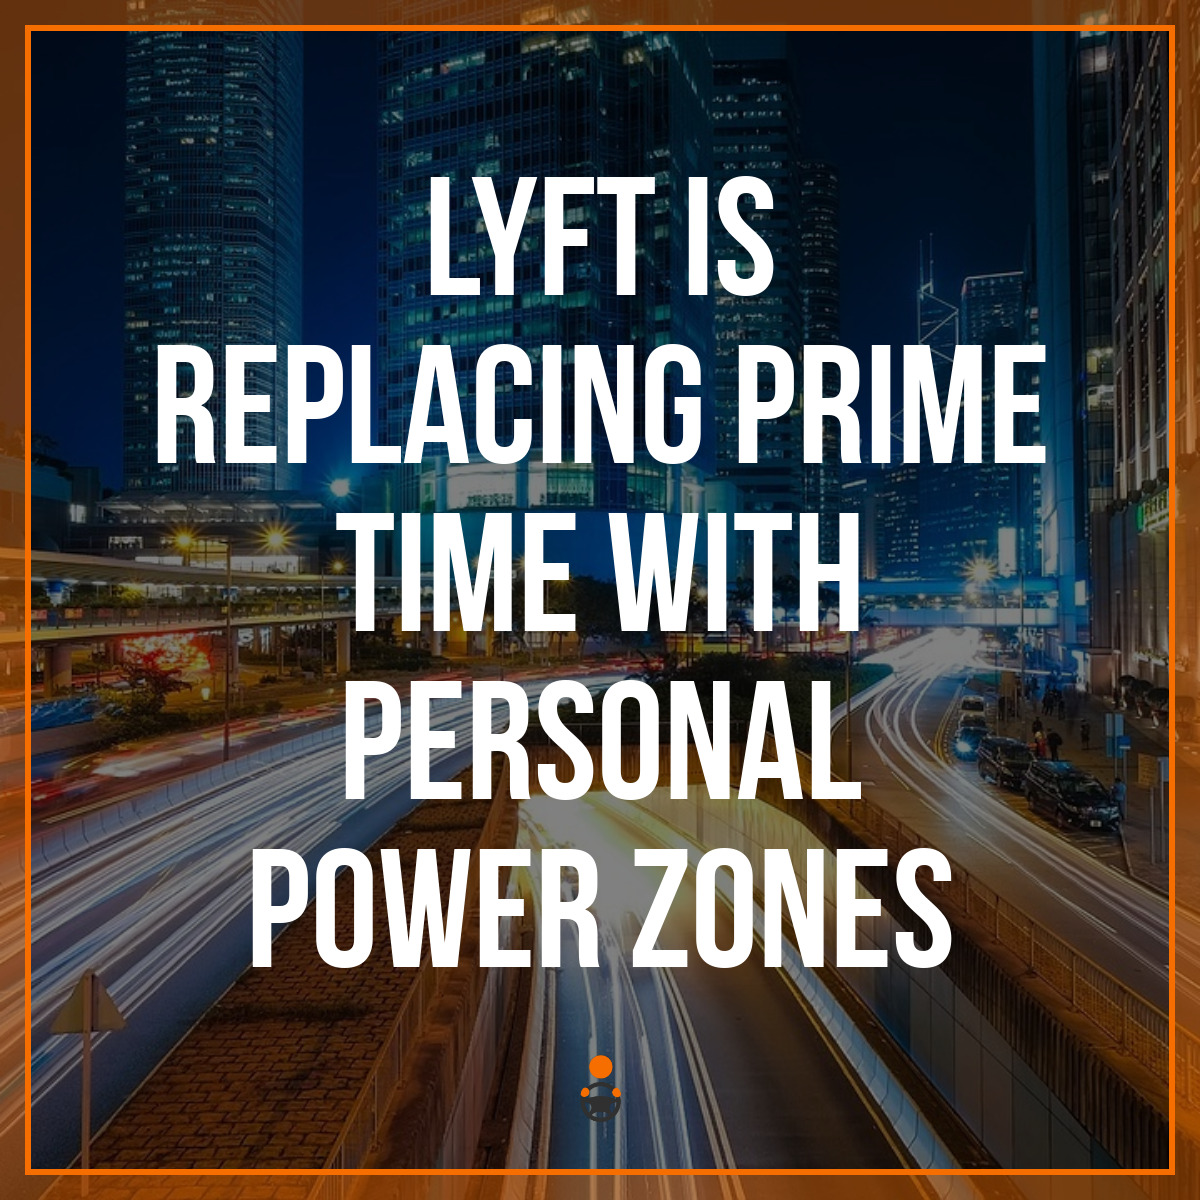 Lyft is Replacing Prime Time with Personal Power Zones